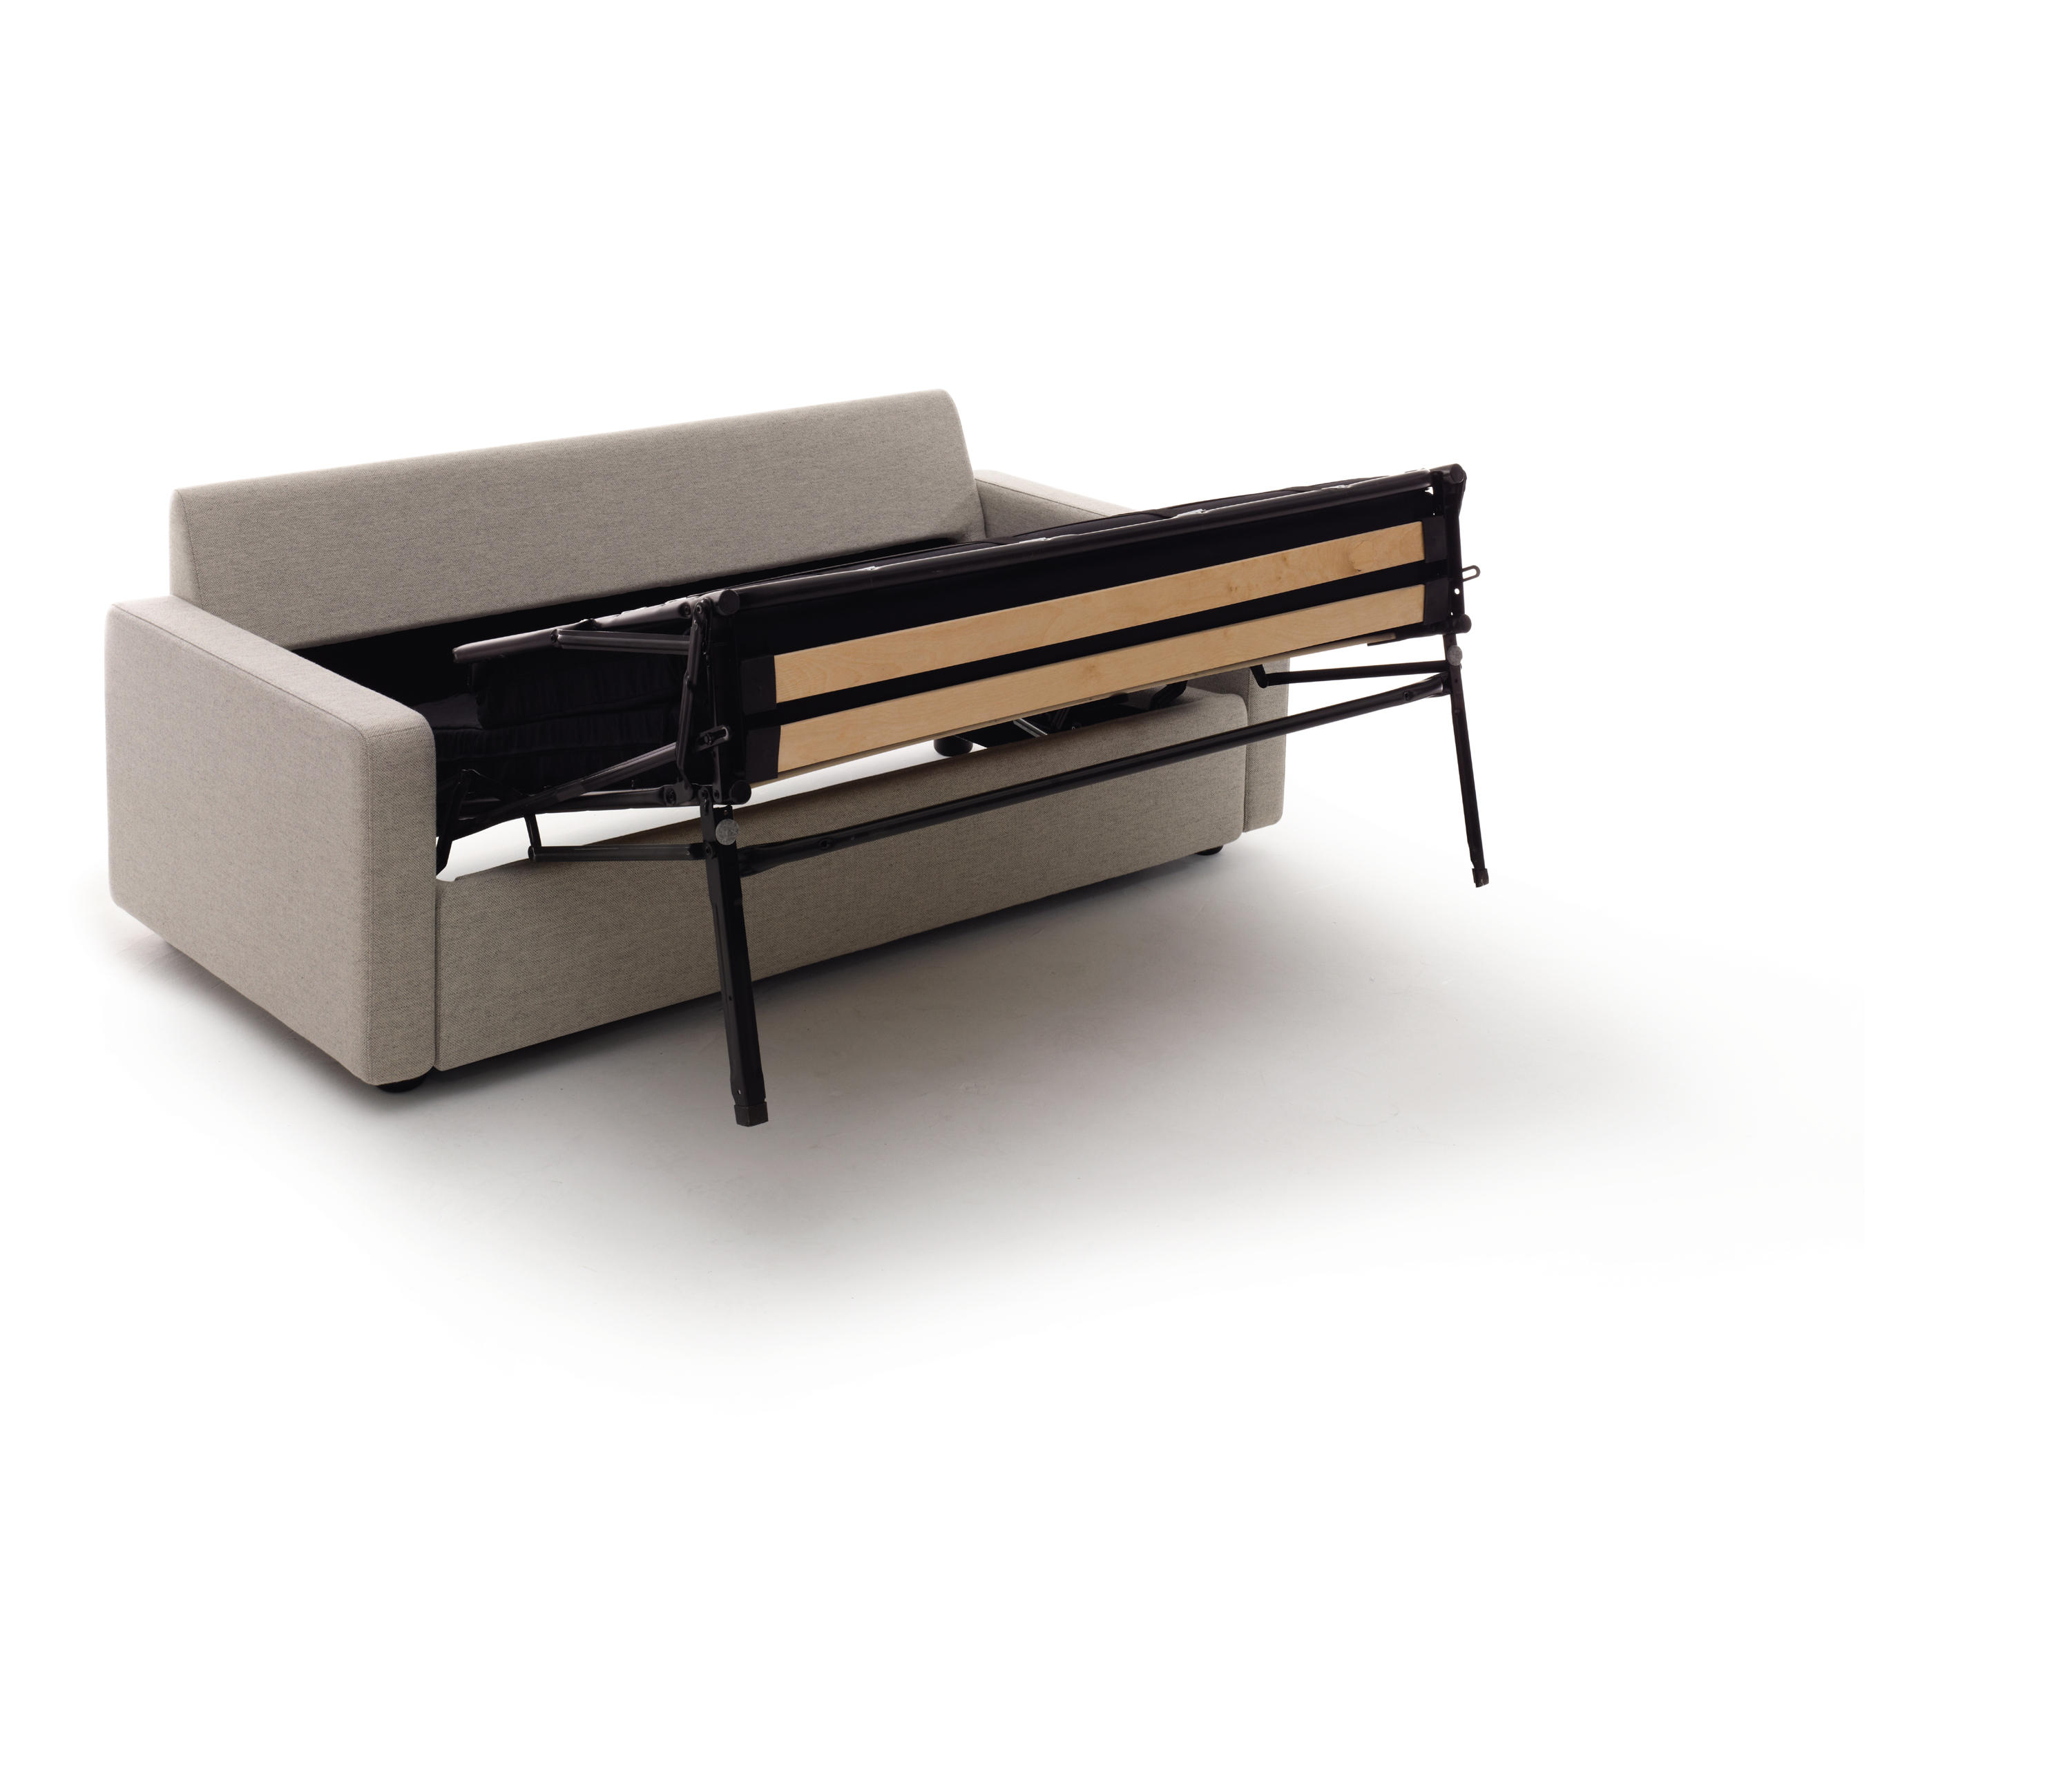 CONSETA SOFA BED Sofa beds from COR